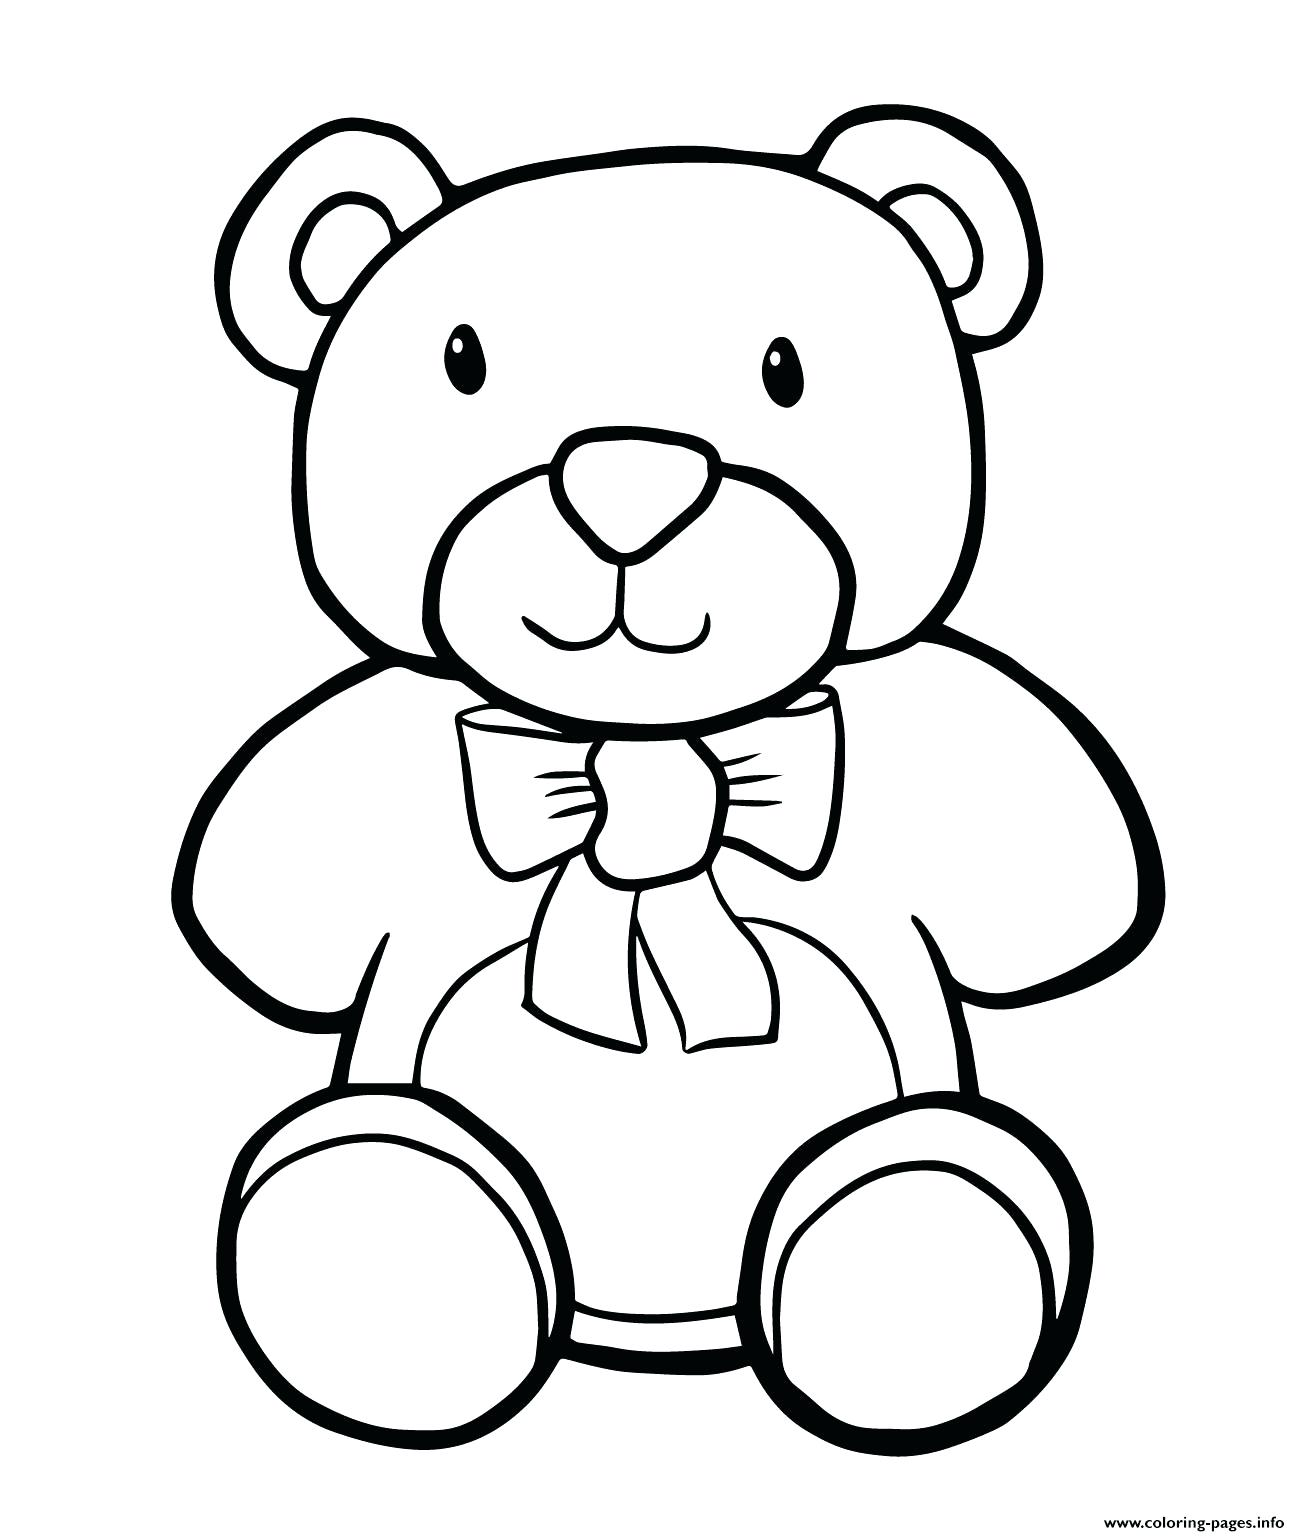 1300x1536 Coloring Pages Simple Teddy Bear Kids Heart Mandala